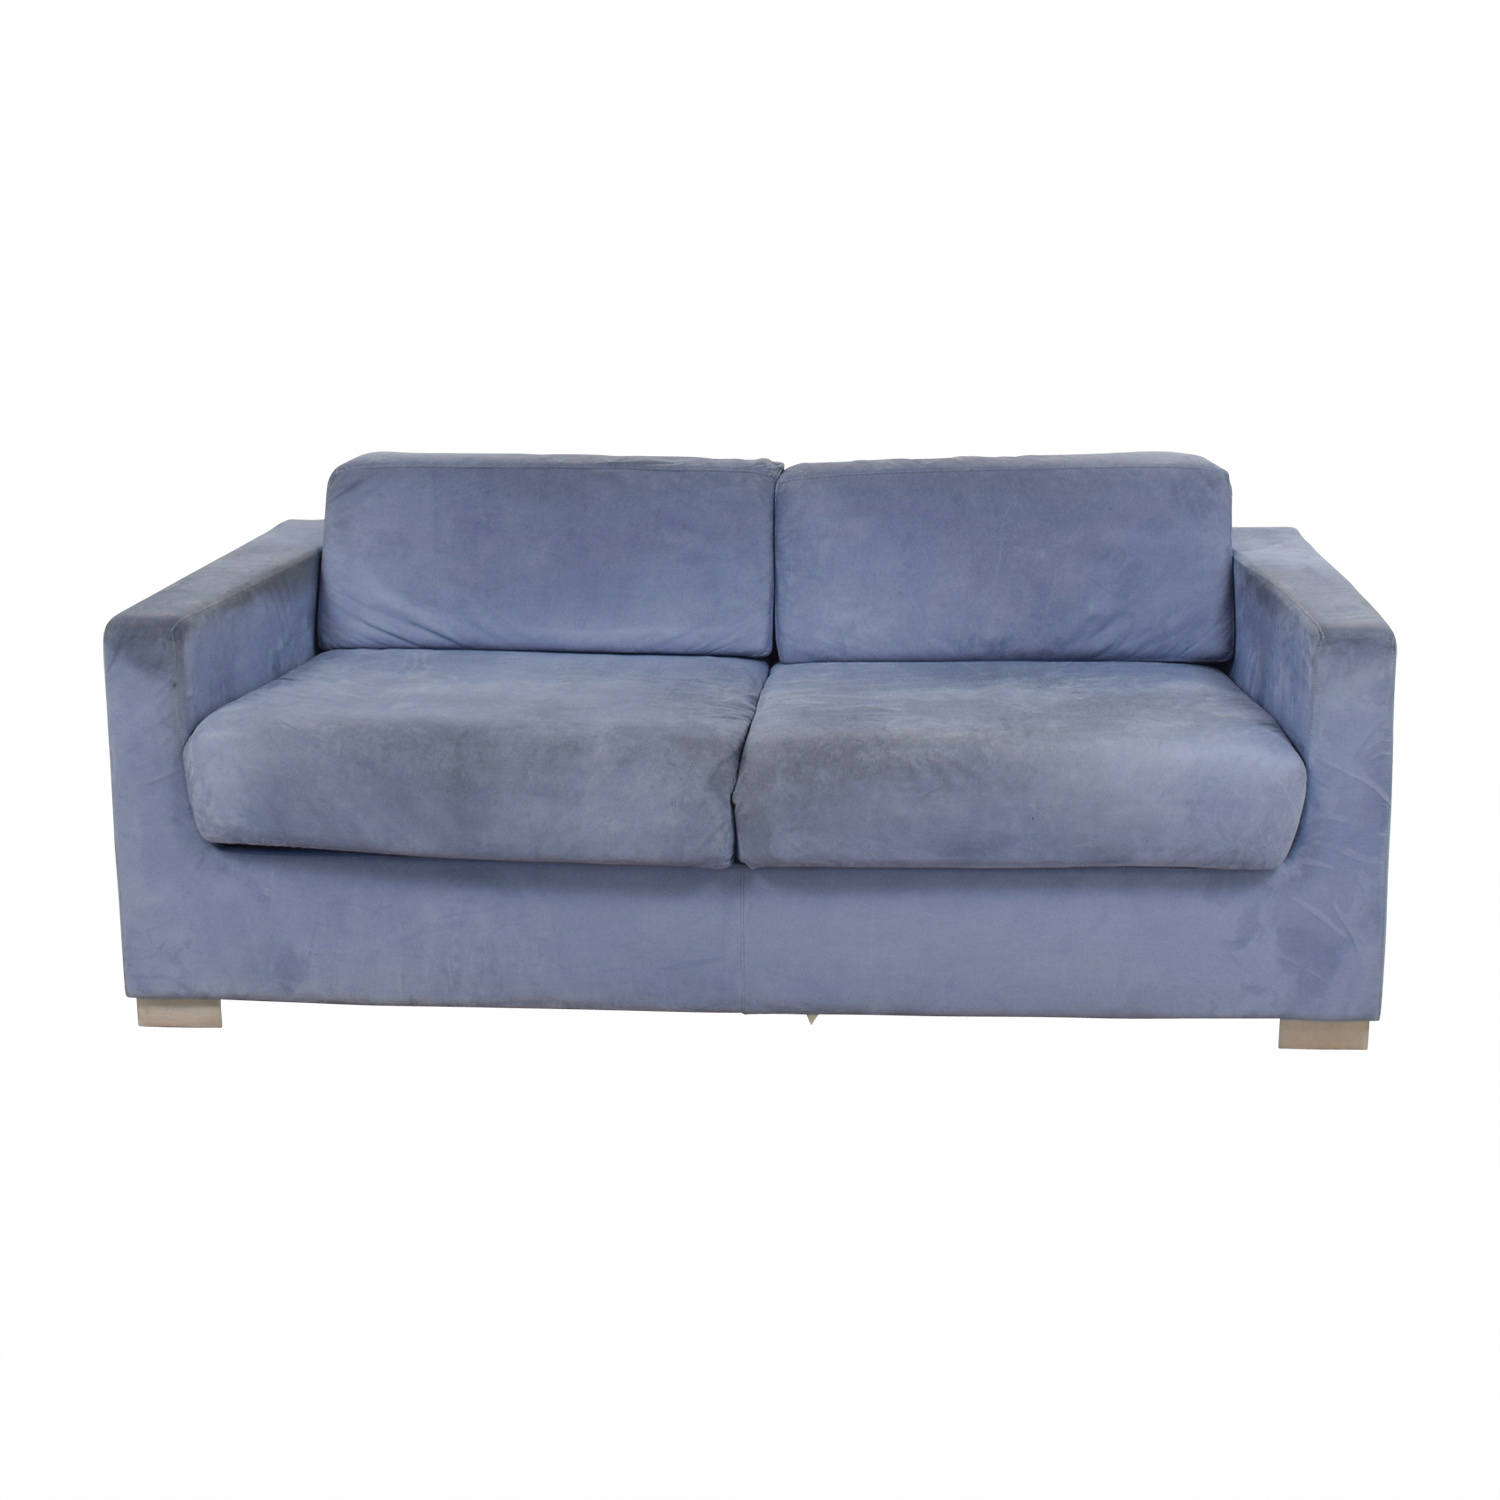 Lounge sofa  69% OFF - Bernhardt Bernhardt League Lounge Sofa / Sofas